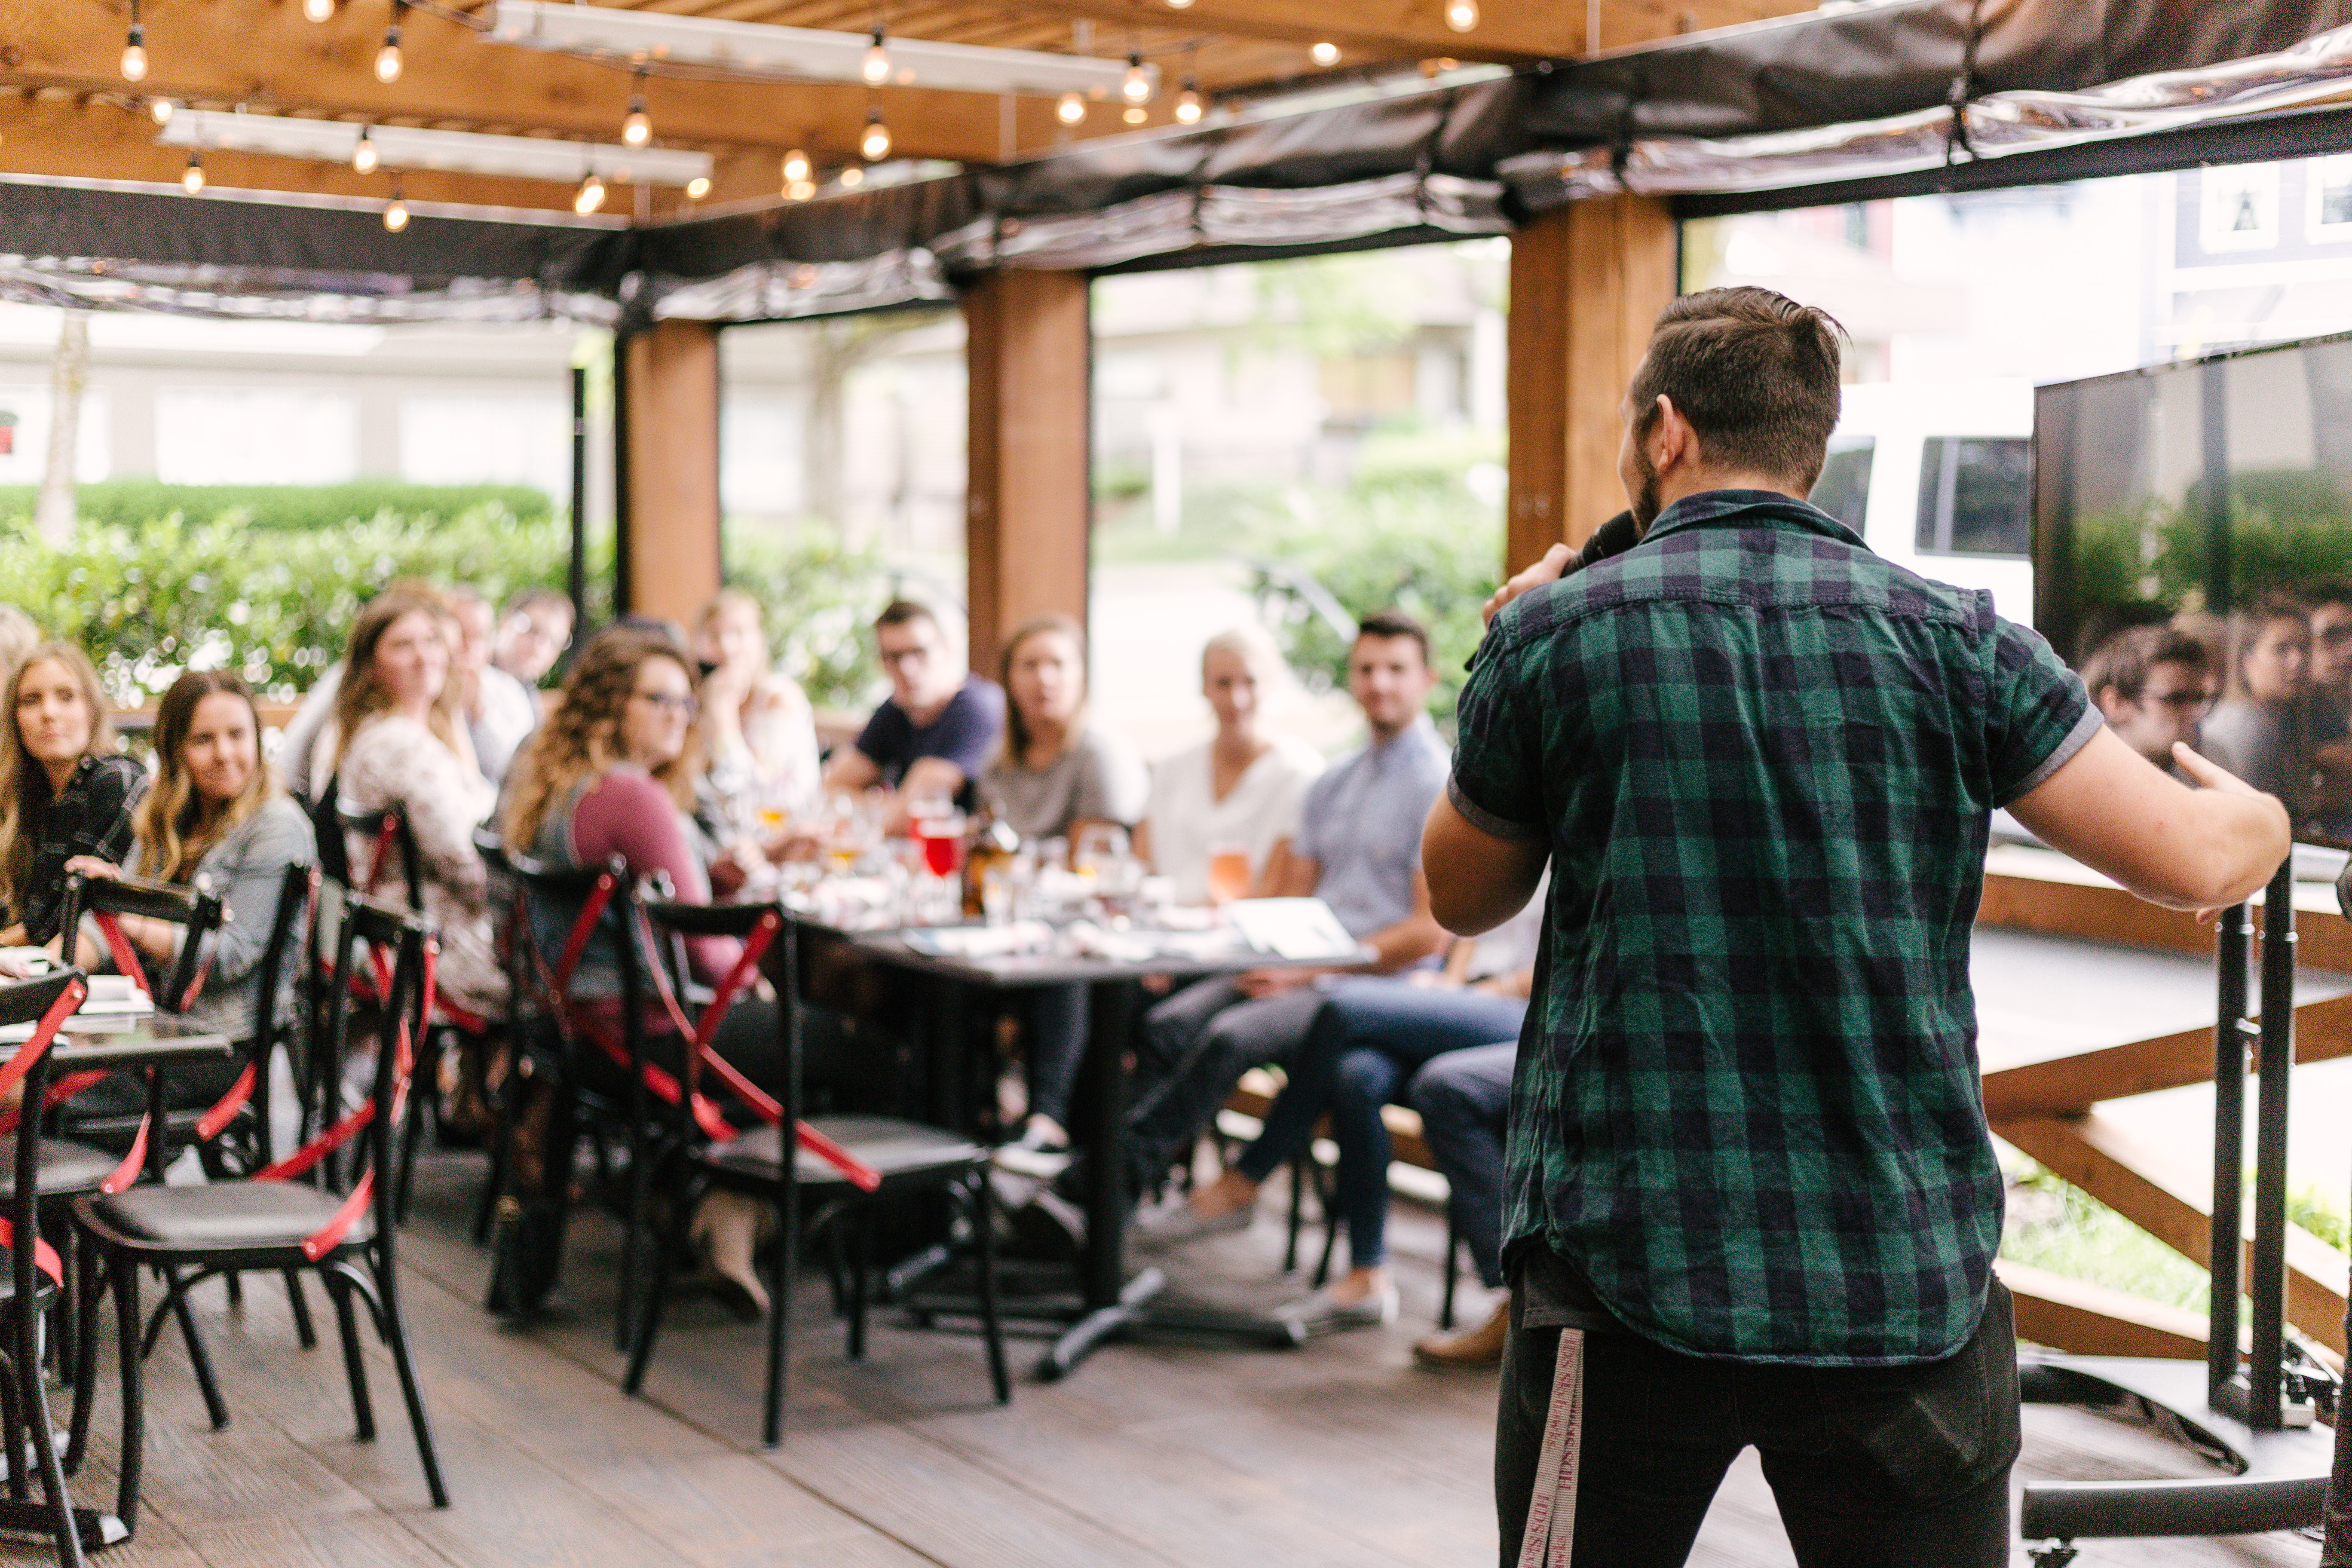 A man in his twenties in a green plaid shirt with short sleeves stands at the front of a room full of people. He is speaking into a microphone. It appears to be a restaurant, with chairs set up at long tables. There are several people in their twenties or thirties sitting at the tables, looking at the man speaking.